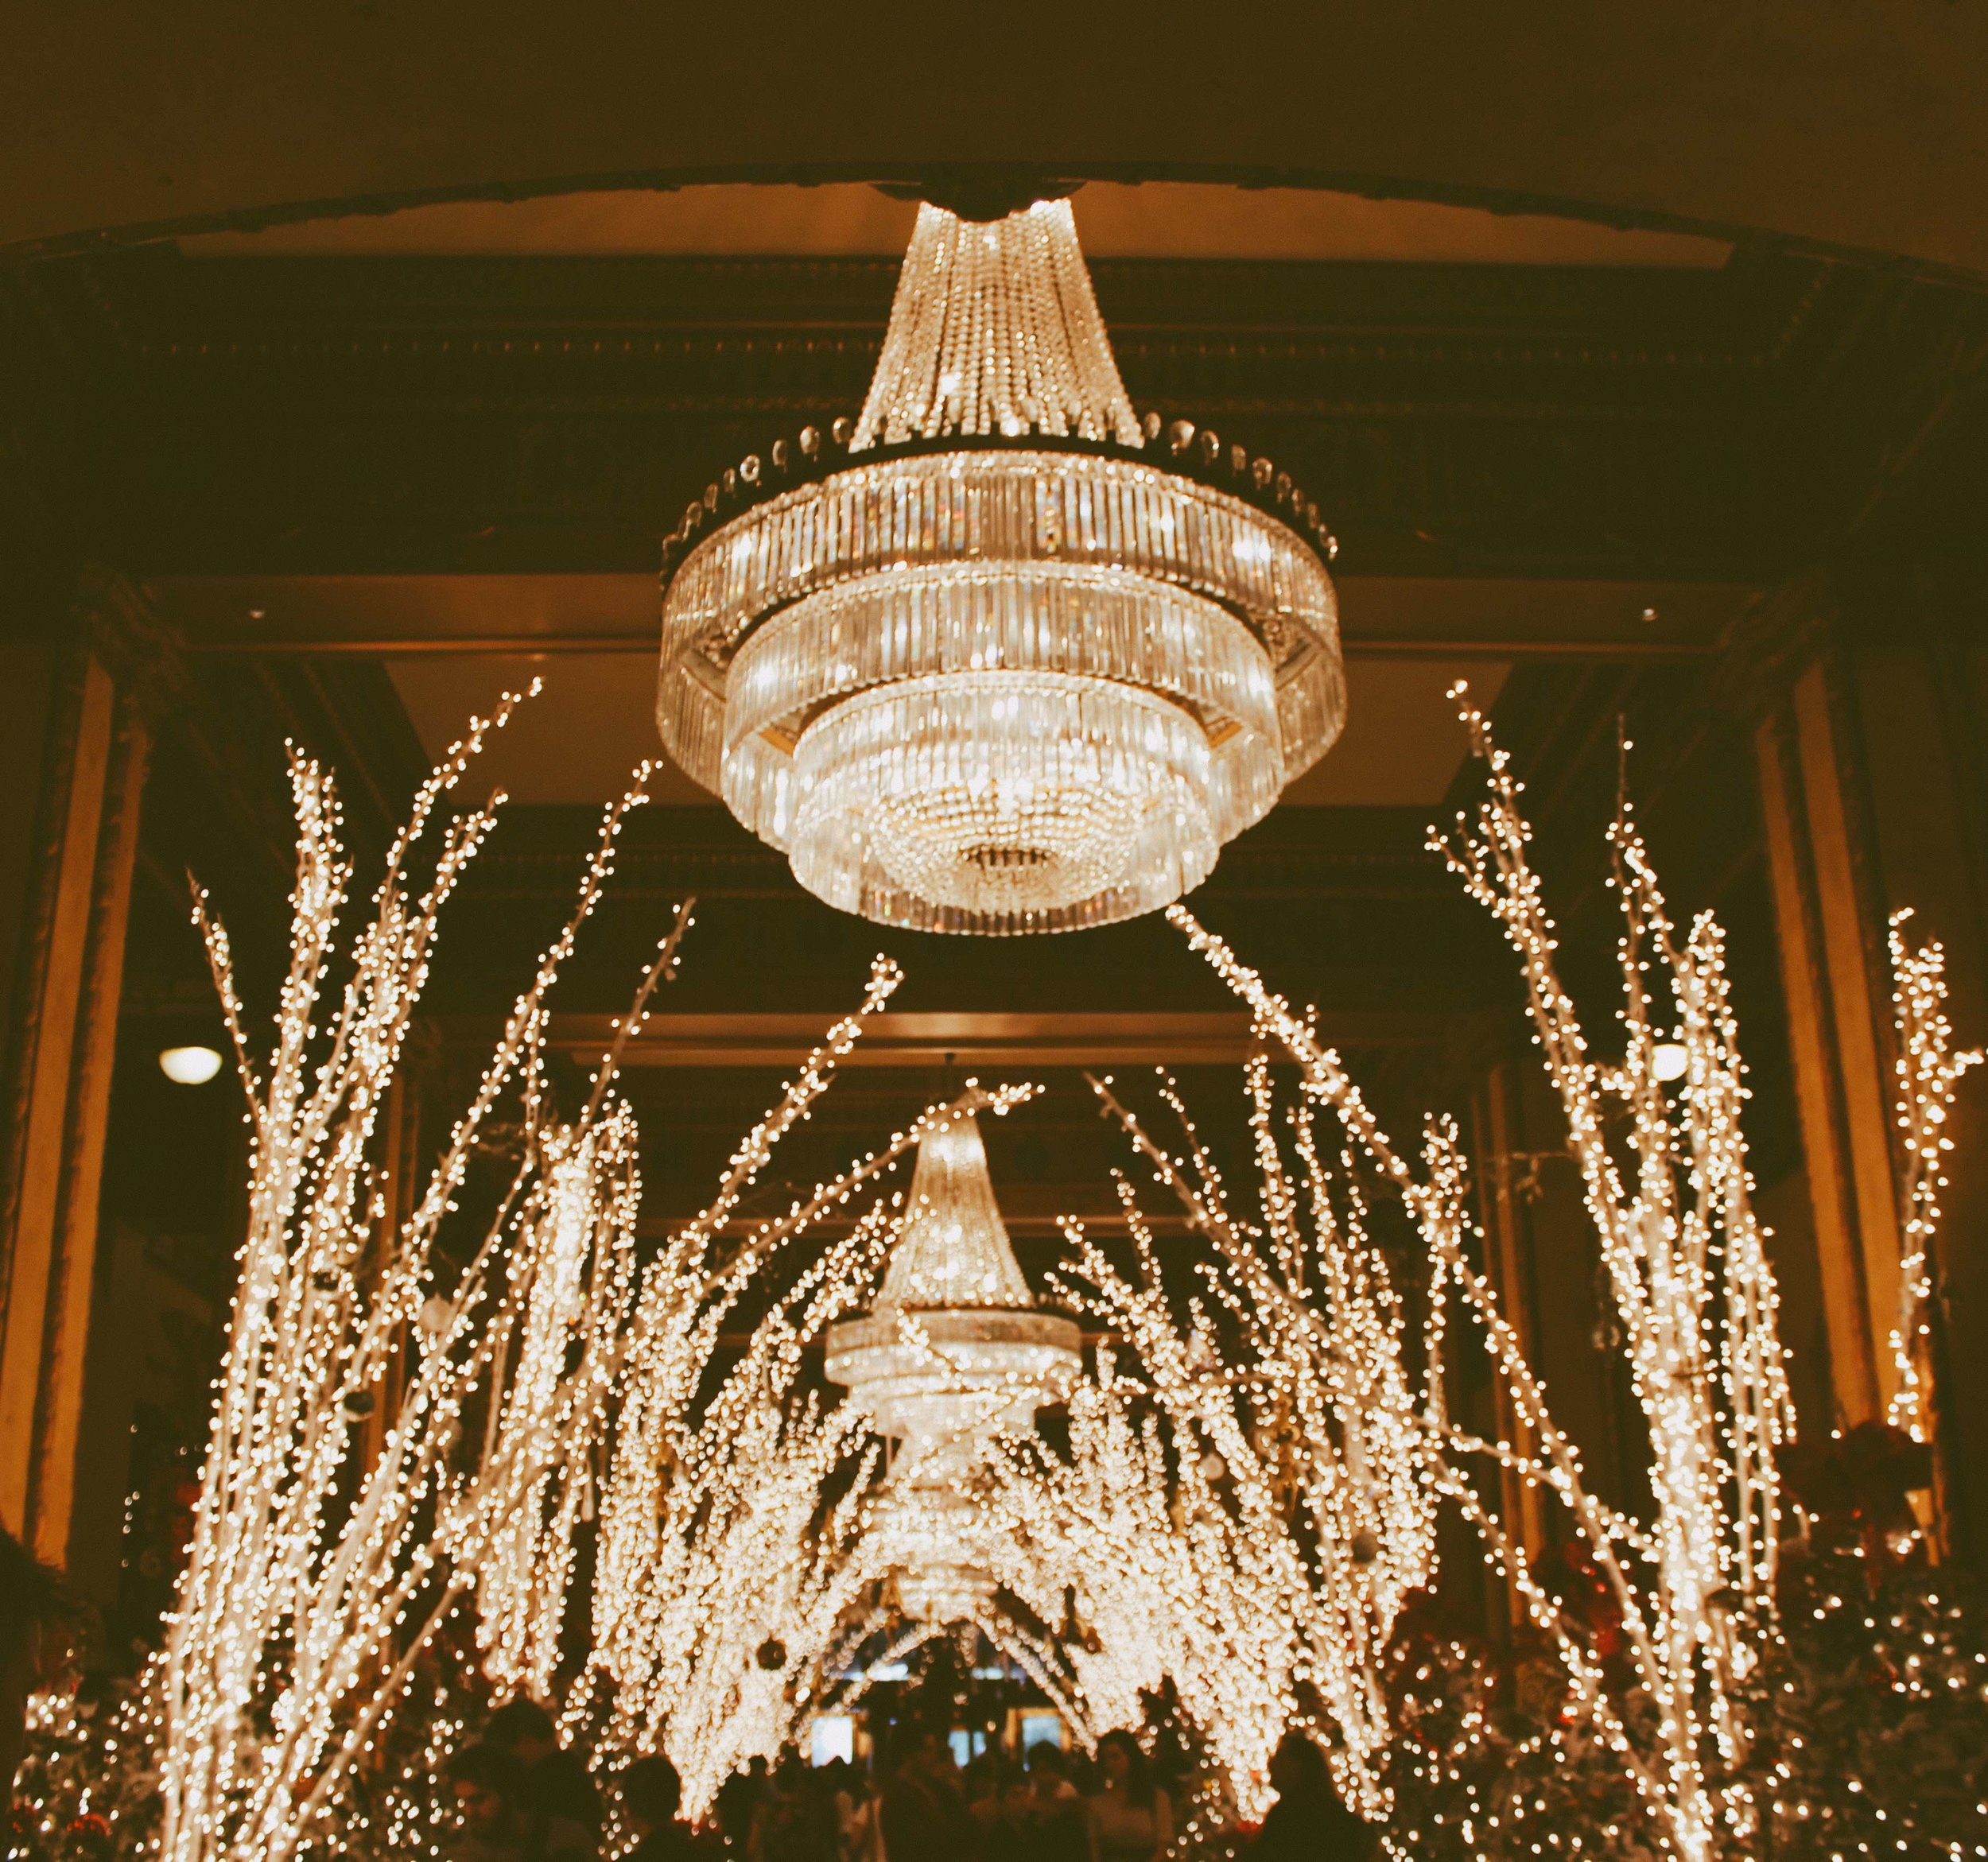 Lights at the Roosevelt | Oui We by Andi Eaton